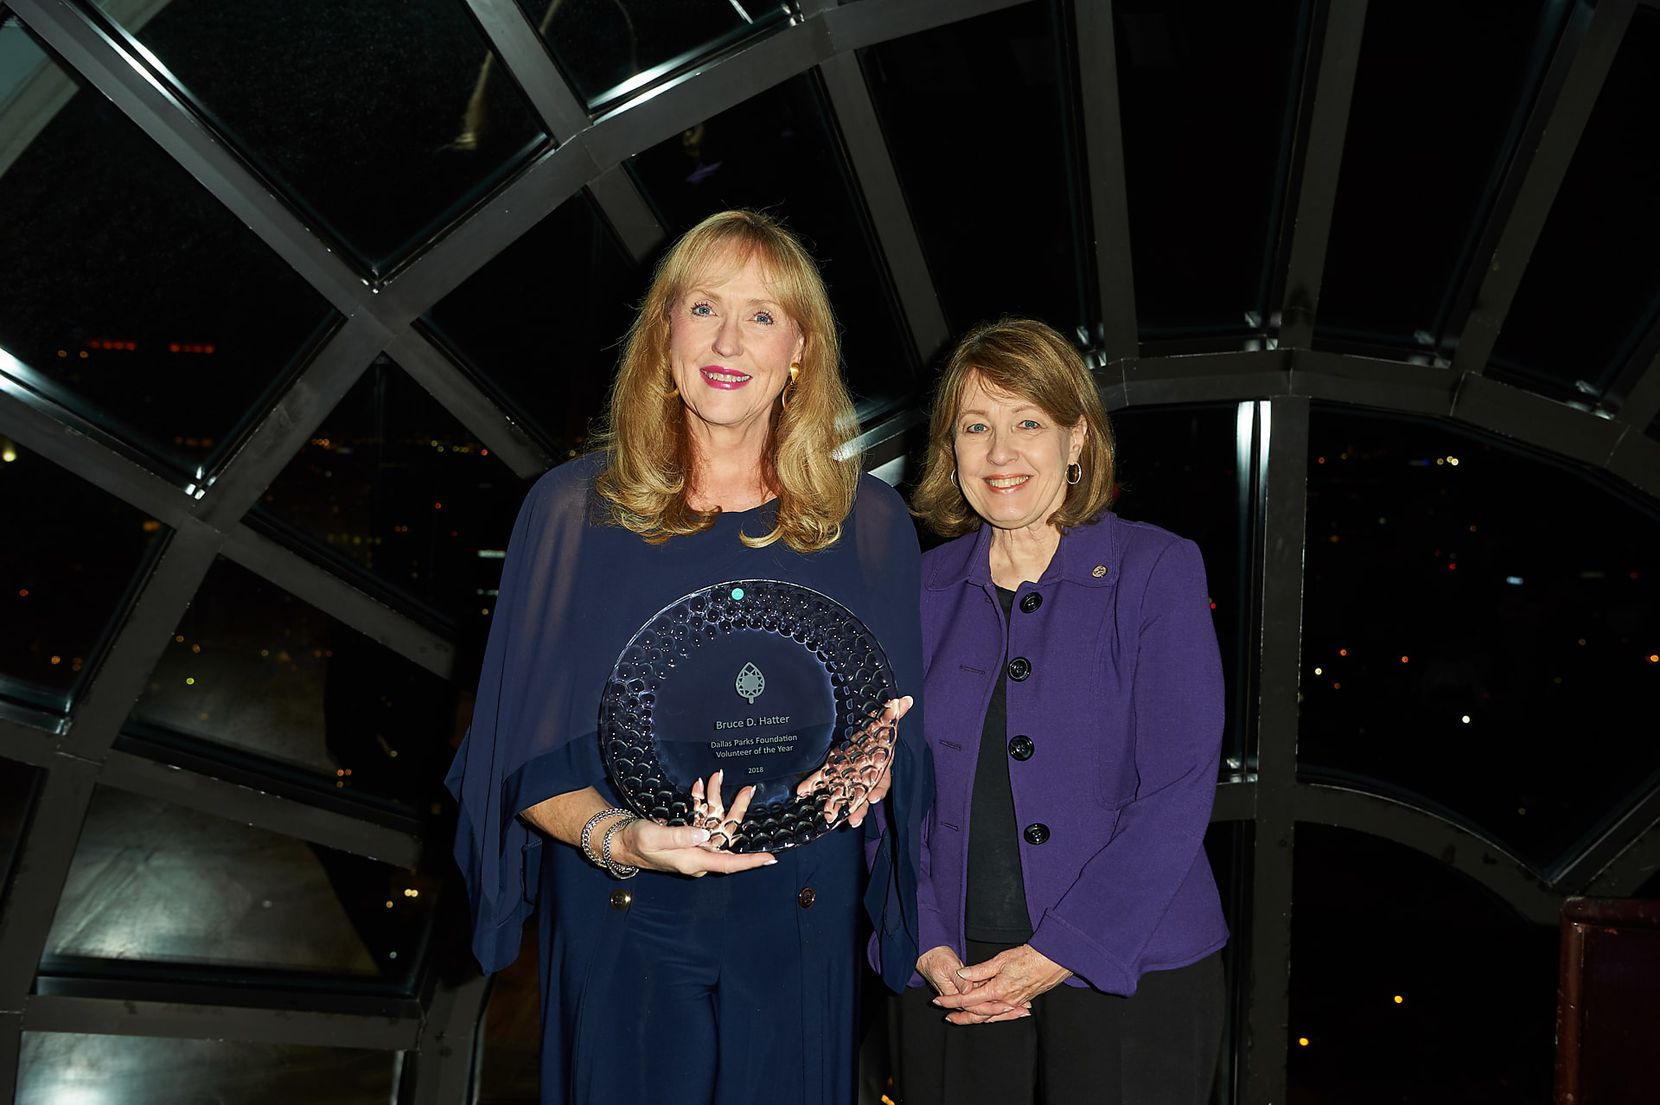 Dallas City Council member Sandy Greyson (right) worked with Betti Coffey and her late husband Bruce Hatter to create a new city park. Here, Coffey holds her husband's Volunteer of the Year award.